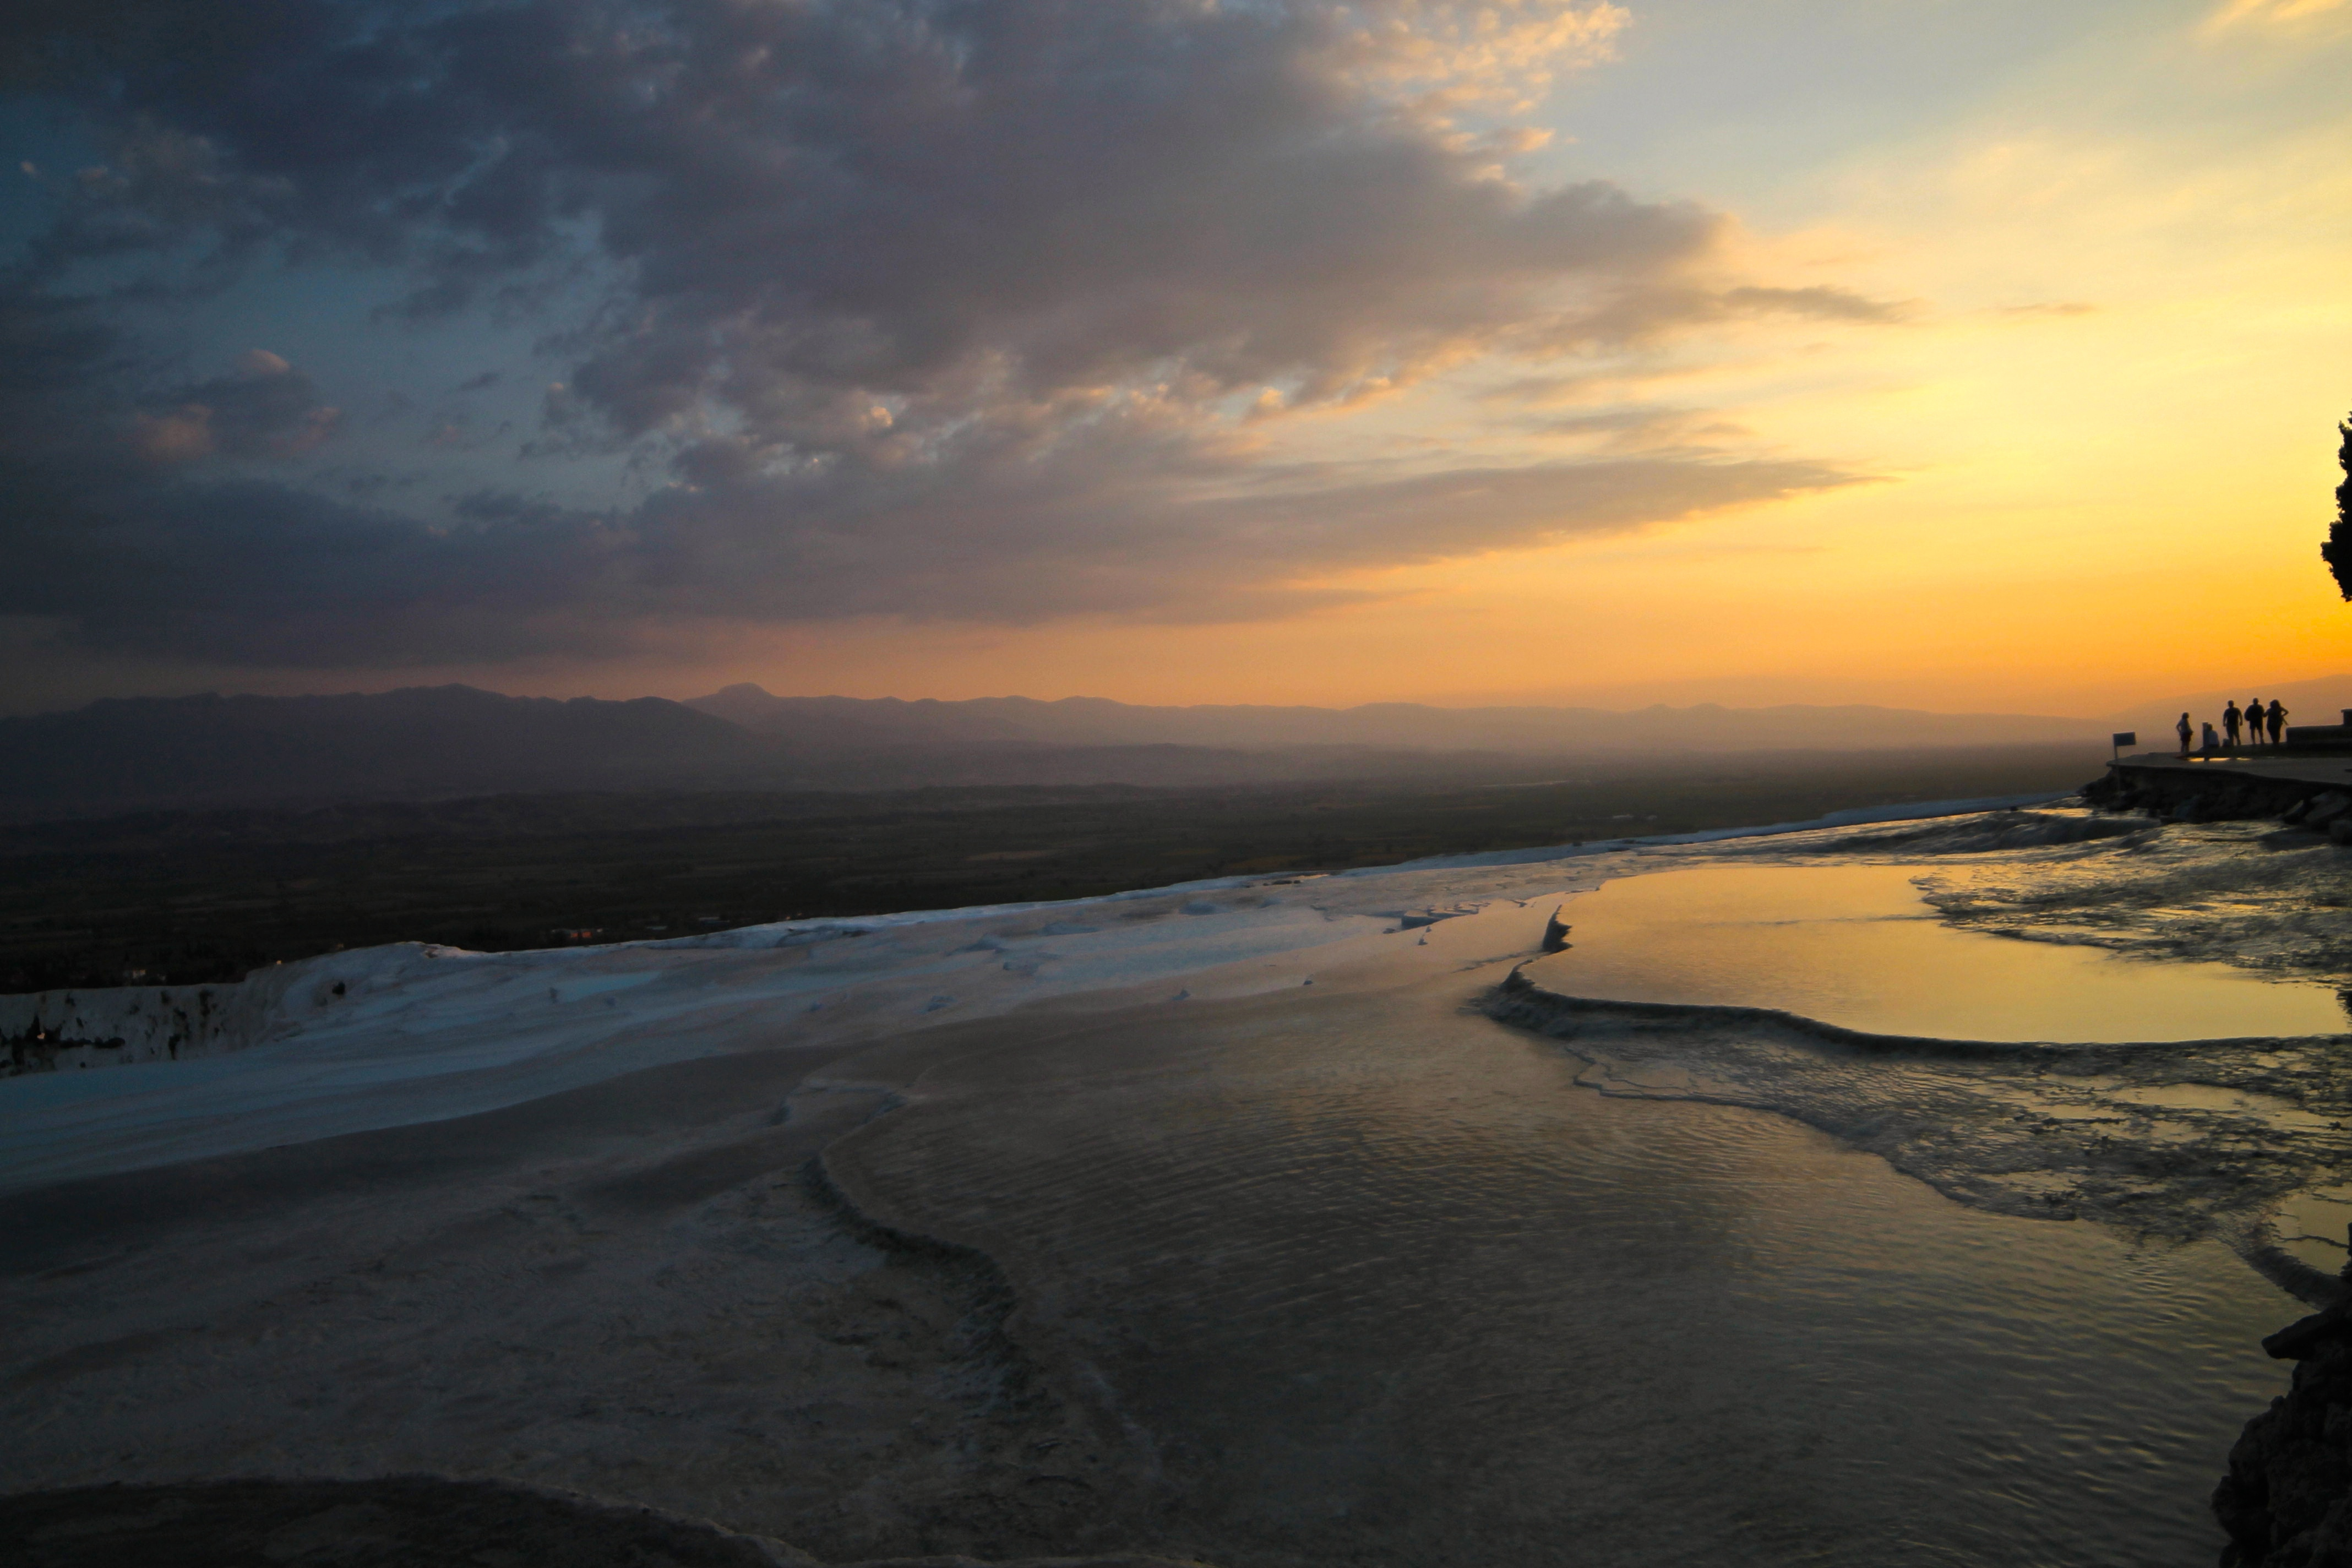 A Stunner of a Sunset at Pamukkale  The Globetrotting Geek